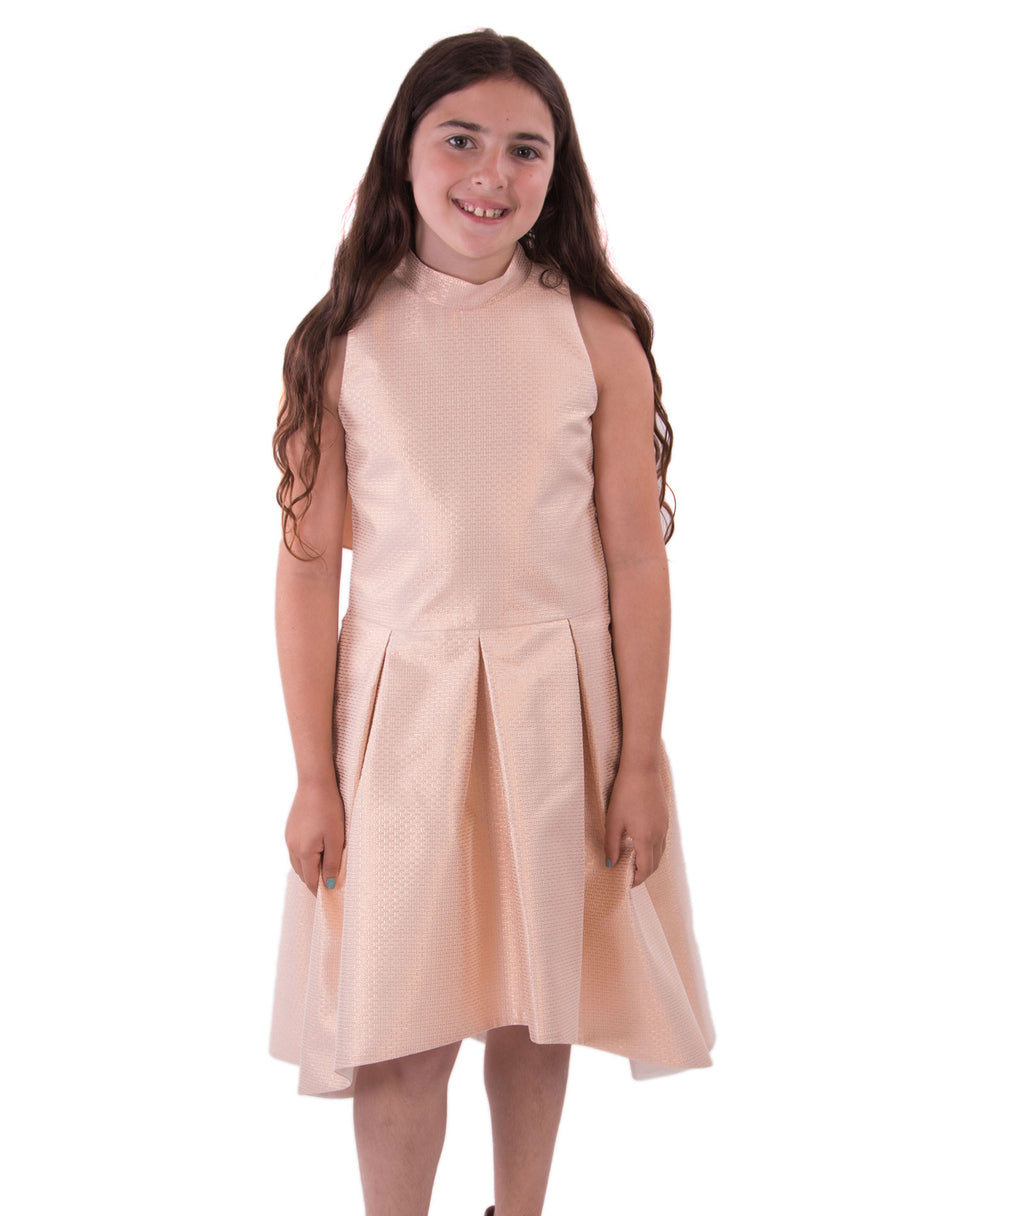 Zoe Ltd. Girls Rose Gold Dress - Frankie's on the Park